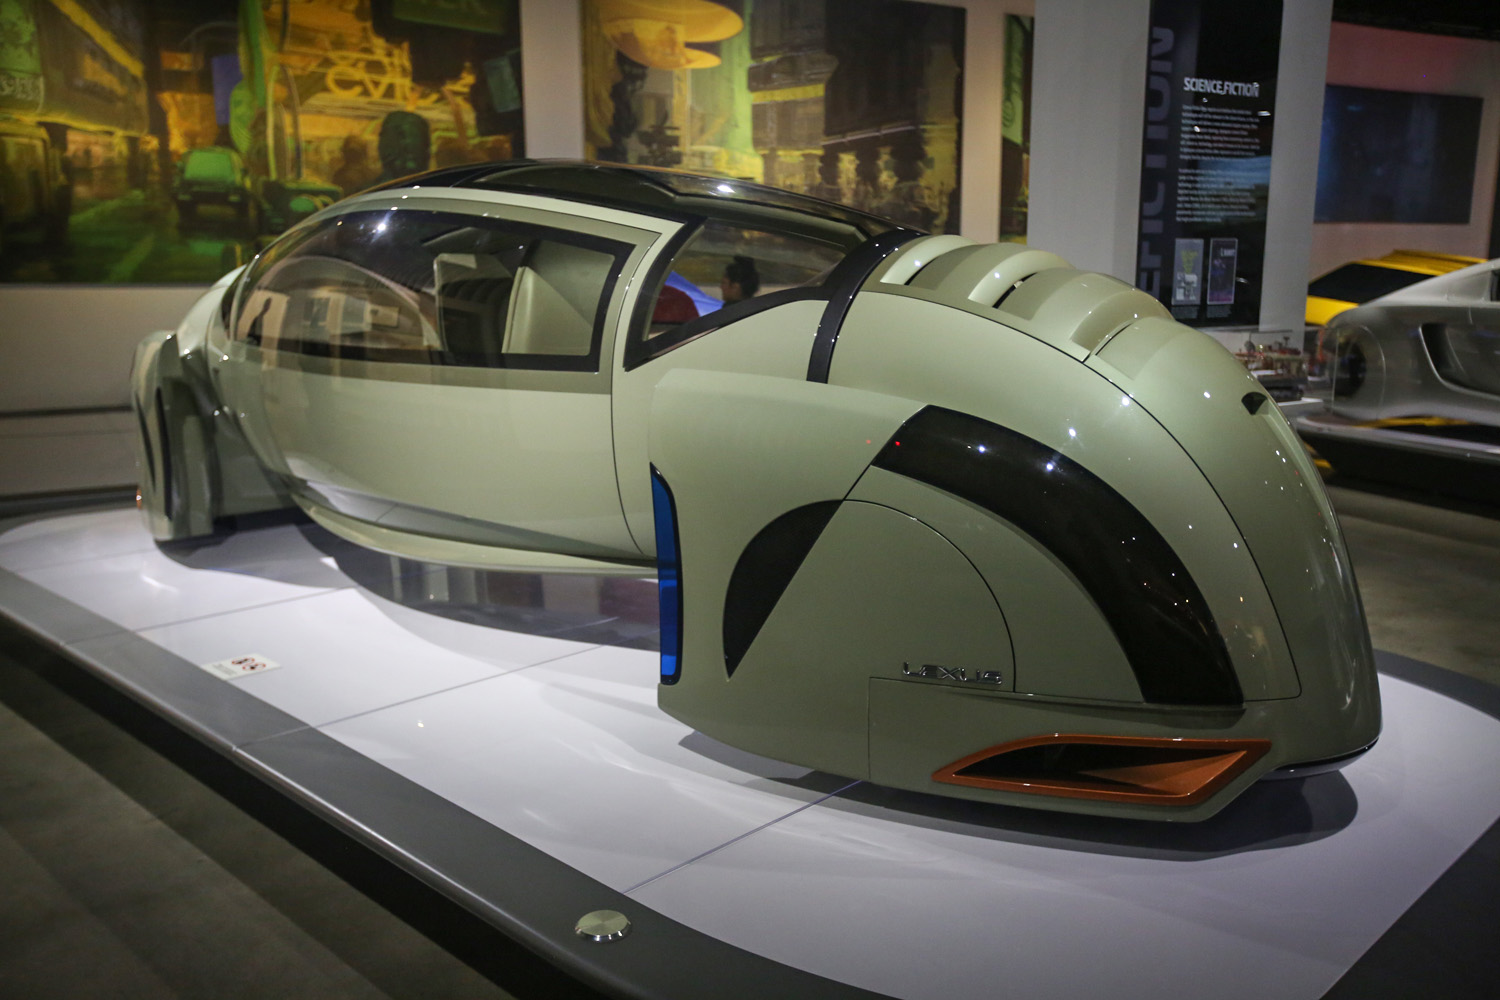 Hollywood Dream Machines: Vehicles of Science Fiction and Fantasy exhibit